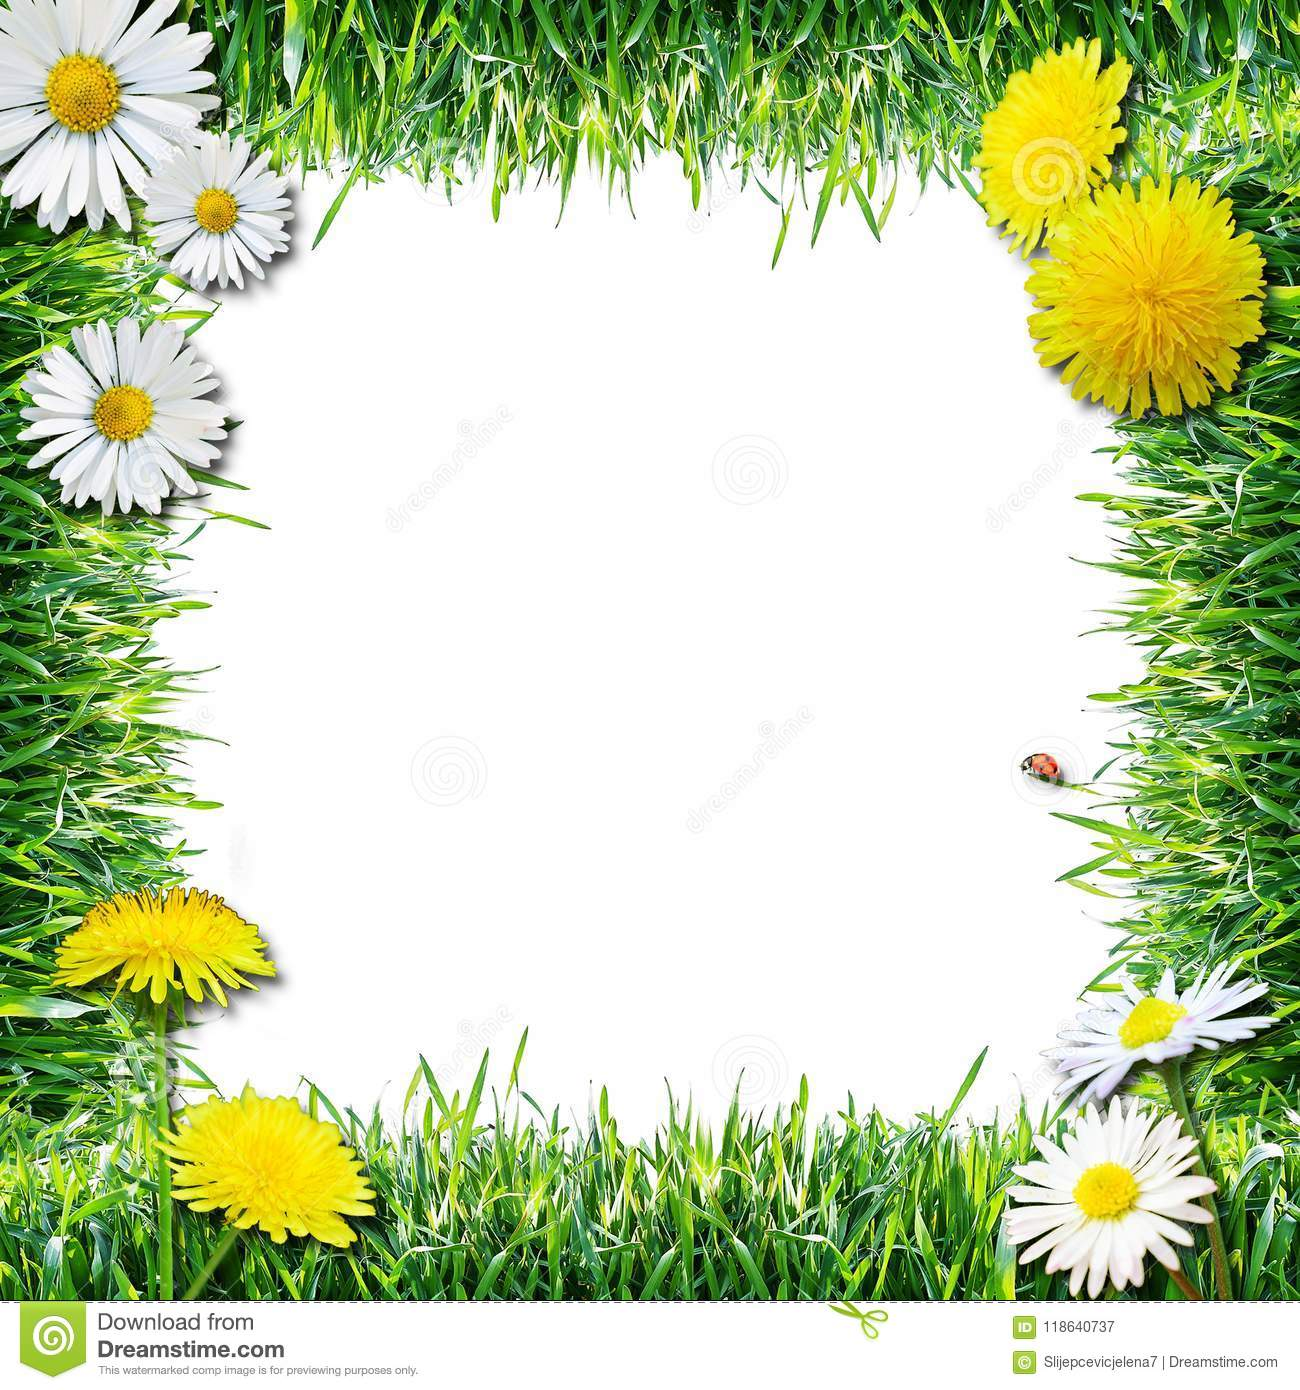 Grass And Flowers Spring And Summer Natural Frame White Background